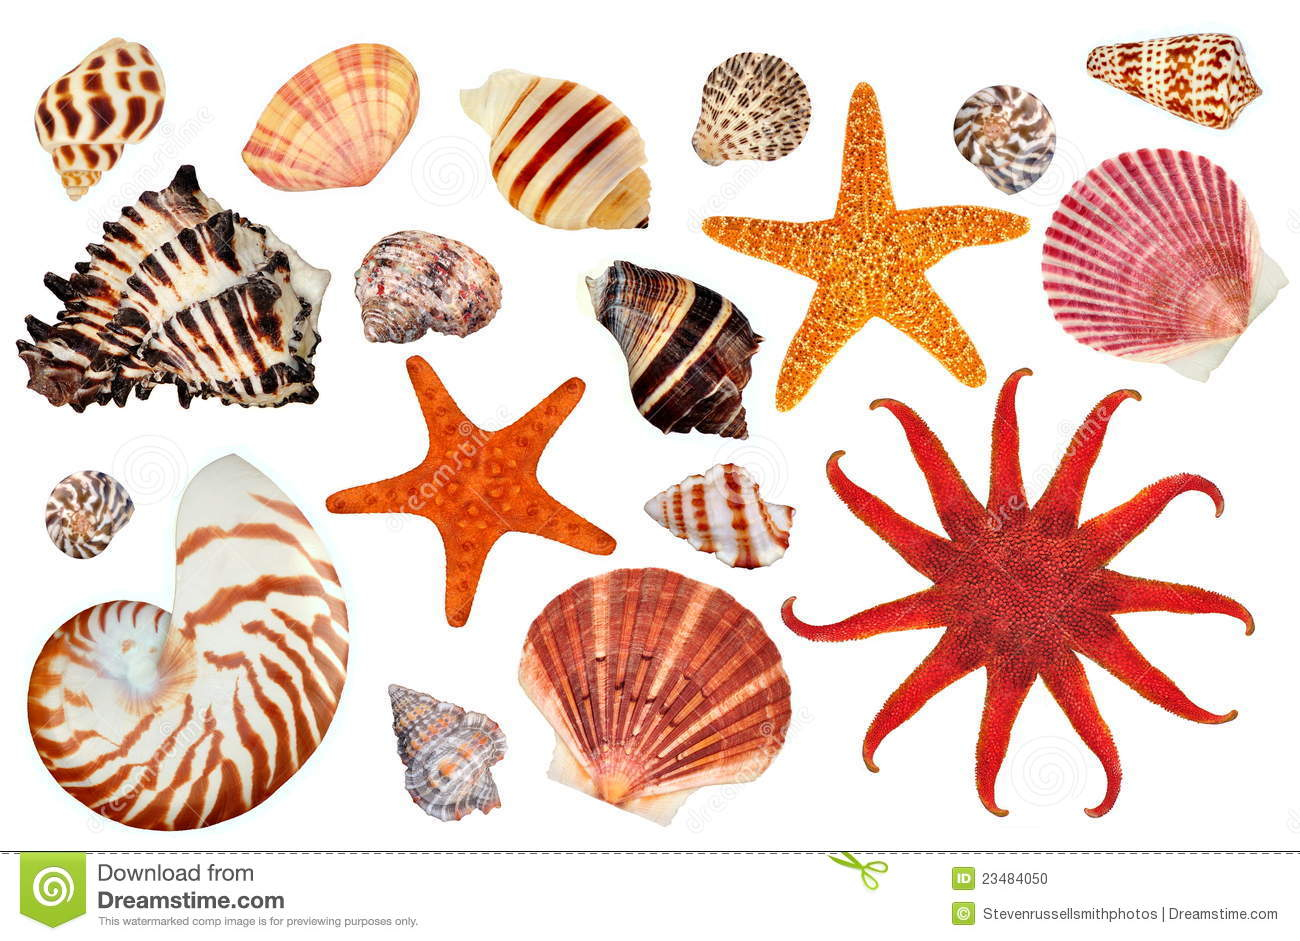 Colorful Starfish And Seashells Stock Photo - Image: 23484050